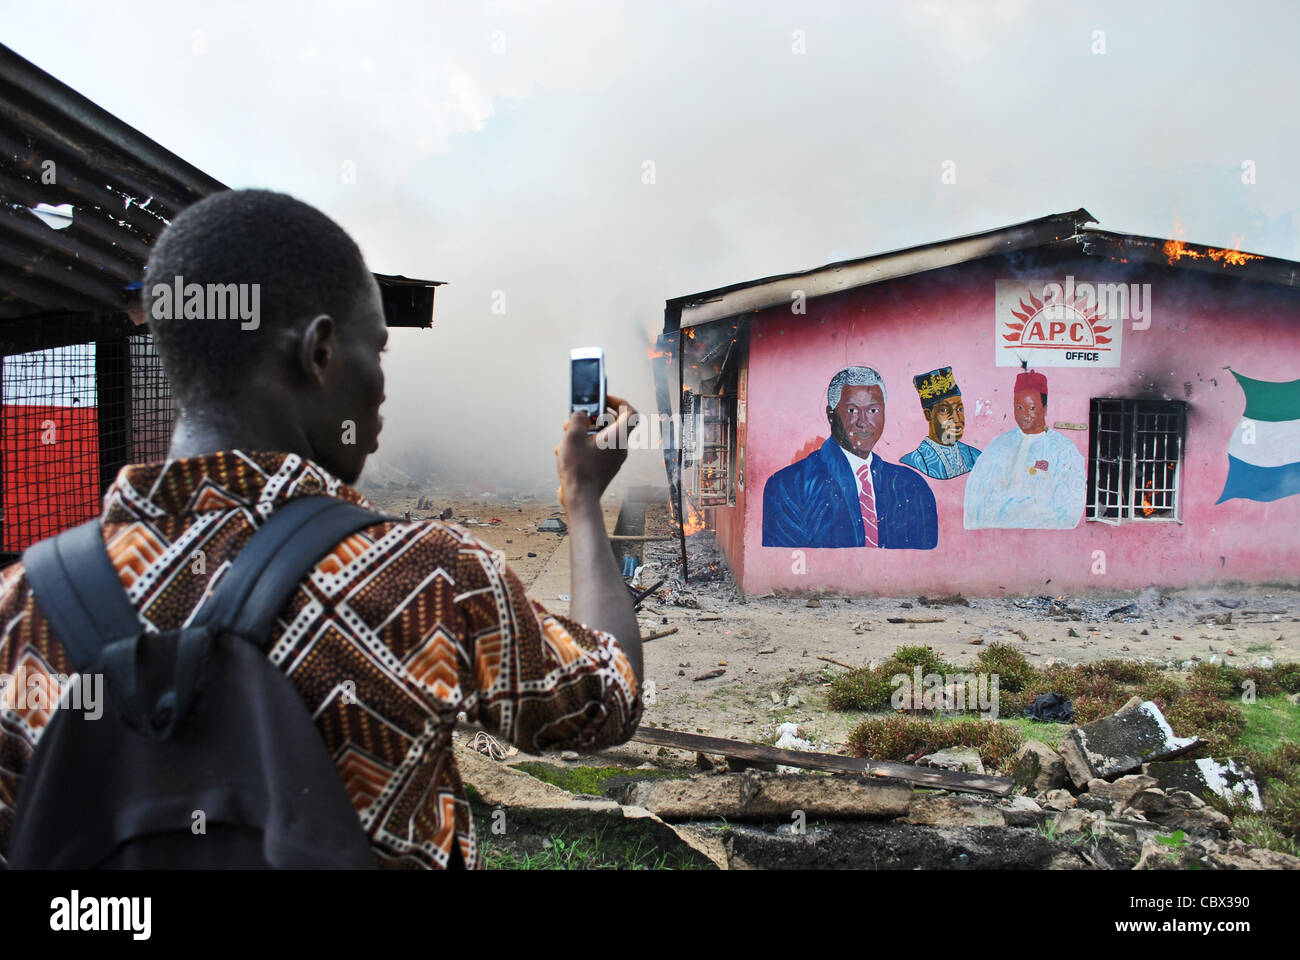 A man uses his phone to photograph the burning office of the APC party during political (pre-election) violence, - Stock Image